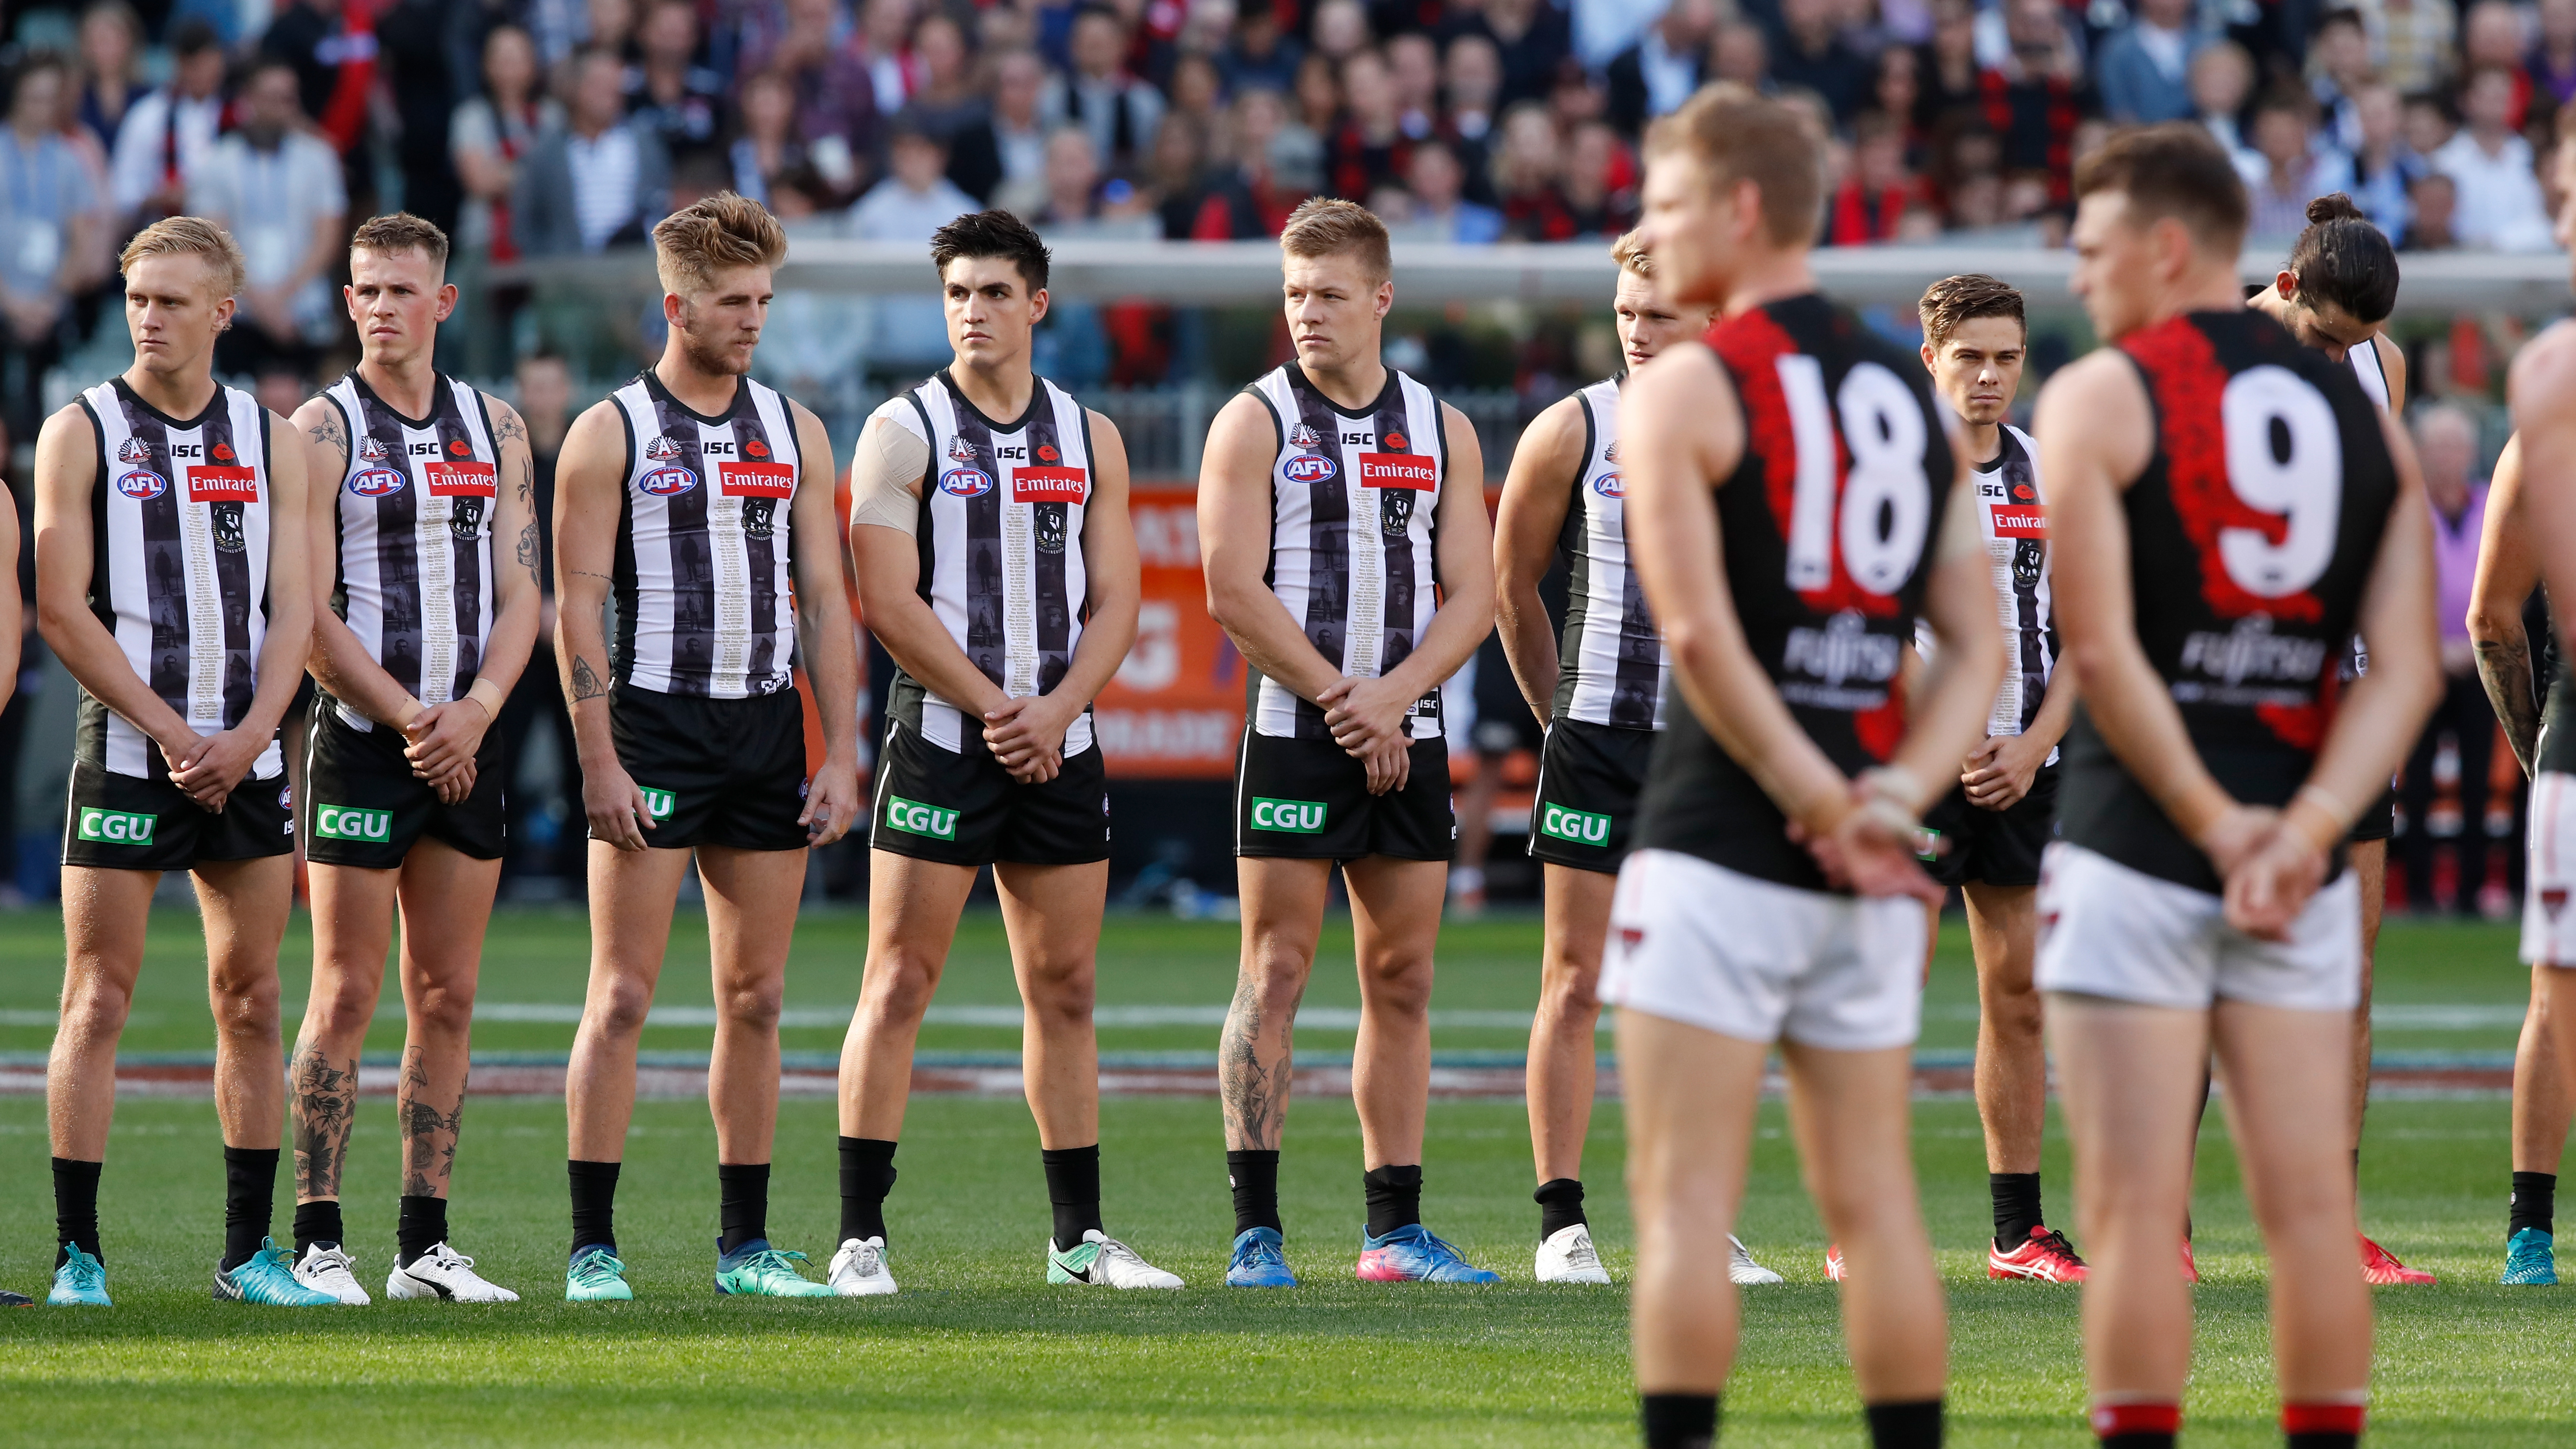 Collingwood and Essendon players line up at the start of an Anzac Day match.